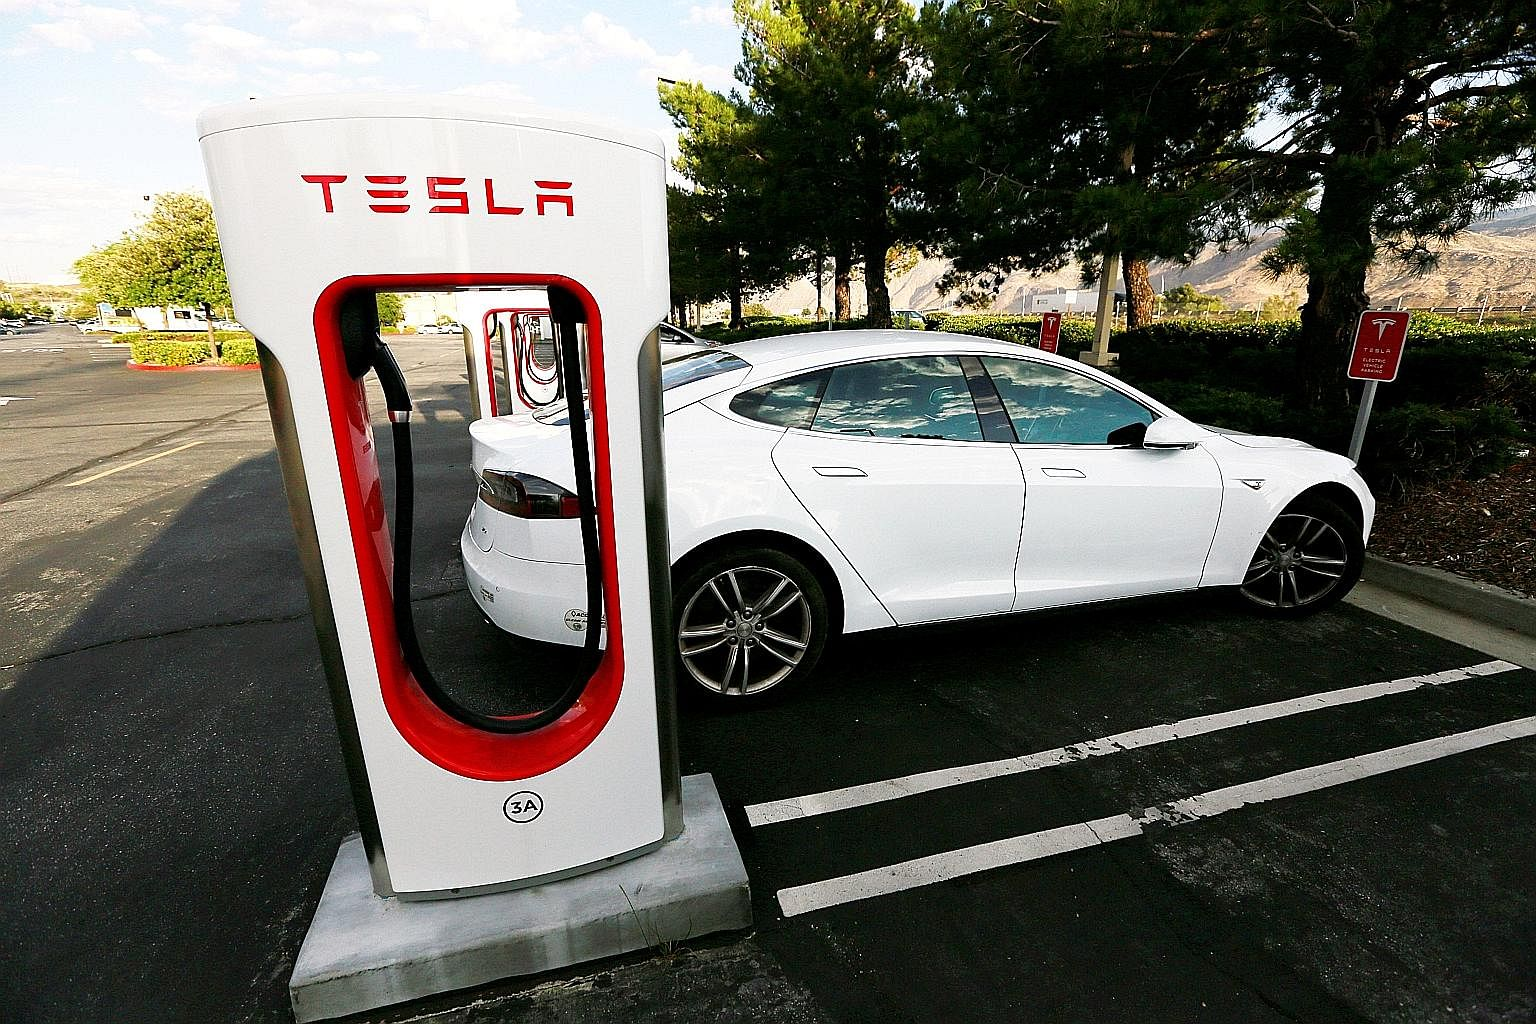 A Tesla Model S at a Tesla Supercharger station in Cabazon, California. The fleet of electric vehicles in use worldwide is on track to displace about 100,000 barrels a day of road transport fuel this year - most of it petrol.